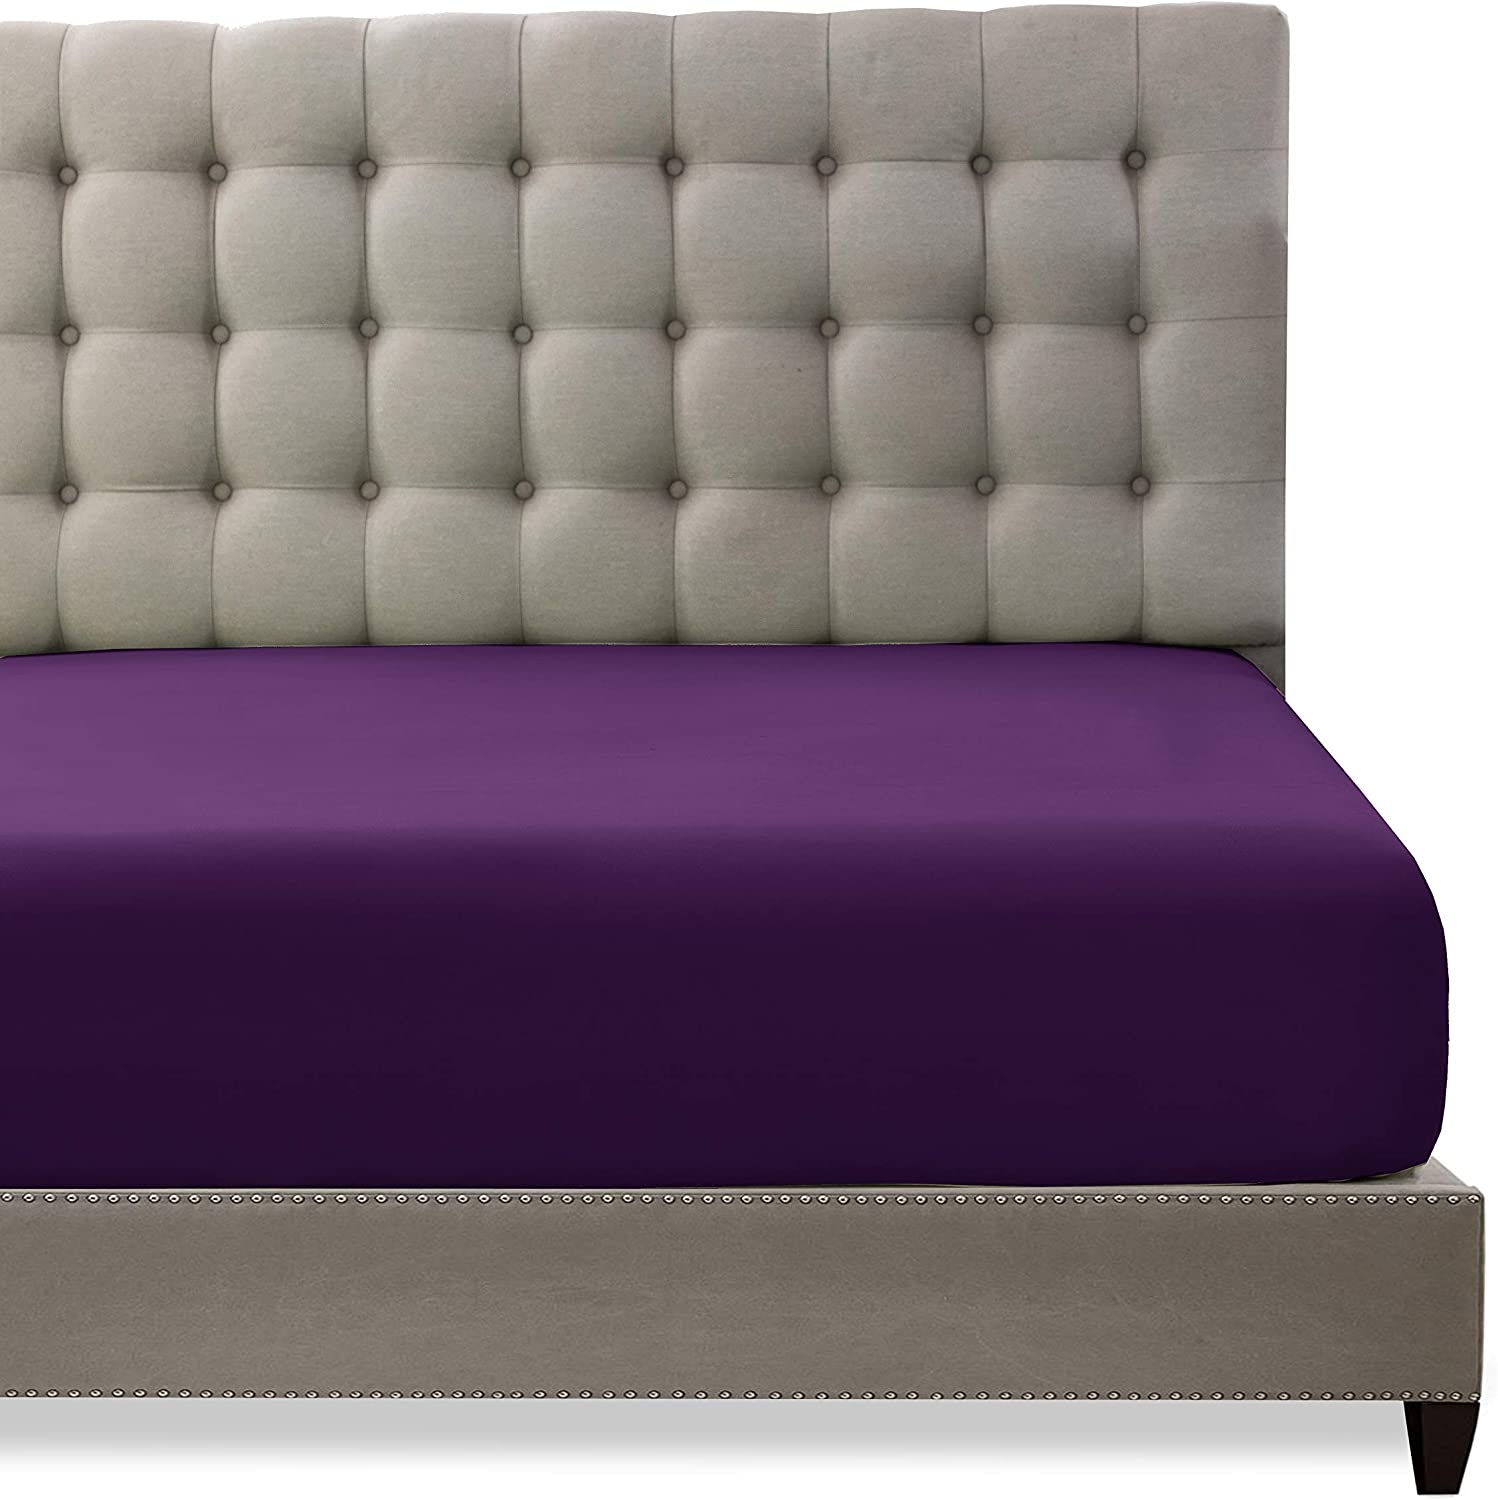 Toodou Soft Max 80% OFF Brushed Excellence Microfiber Purple Sheet-Com Full Size Fitted